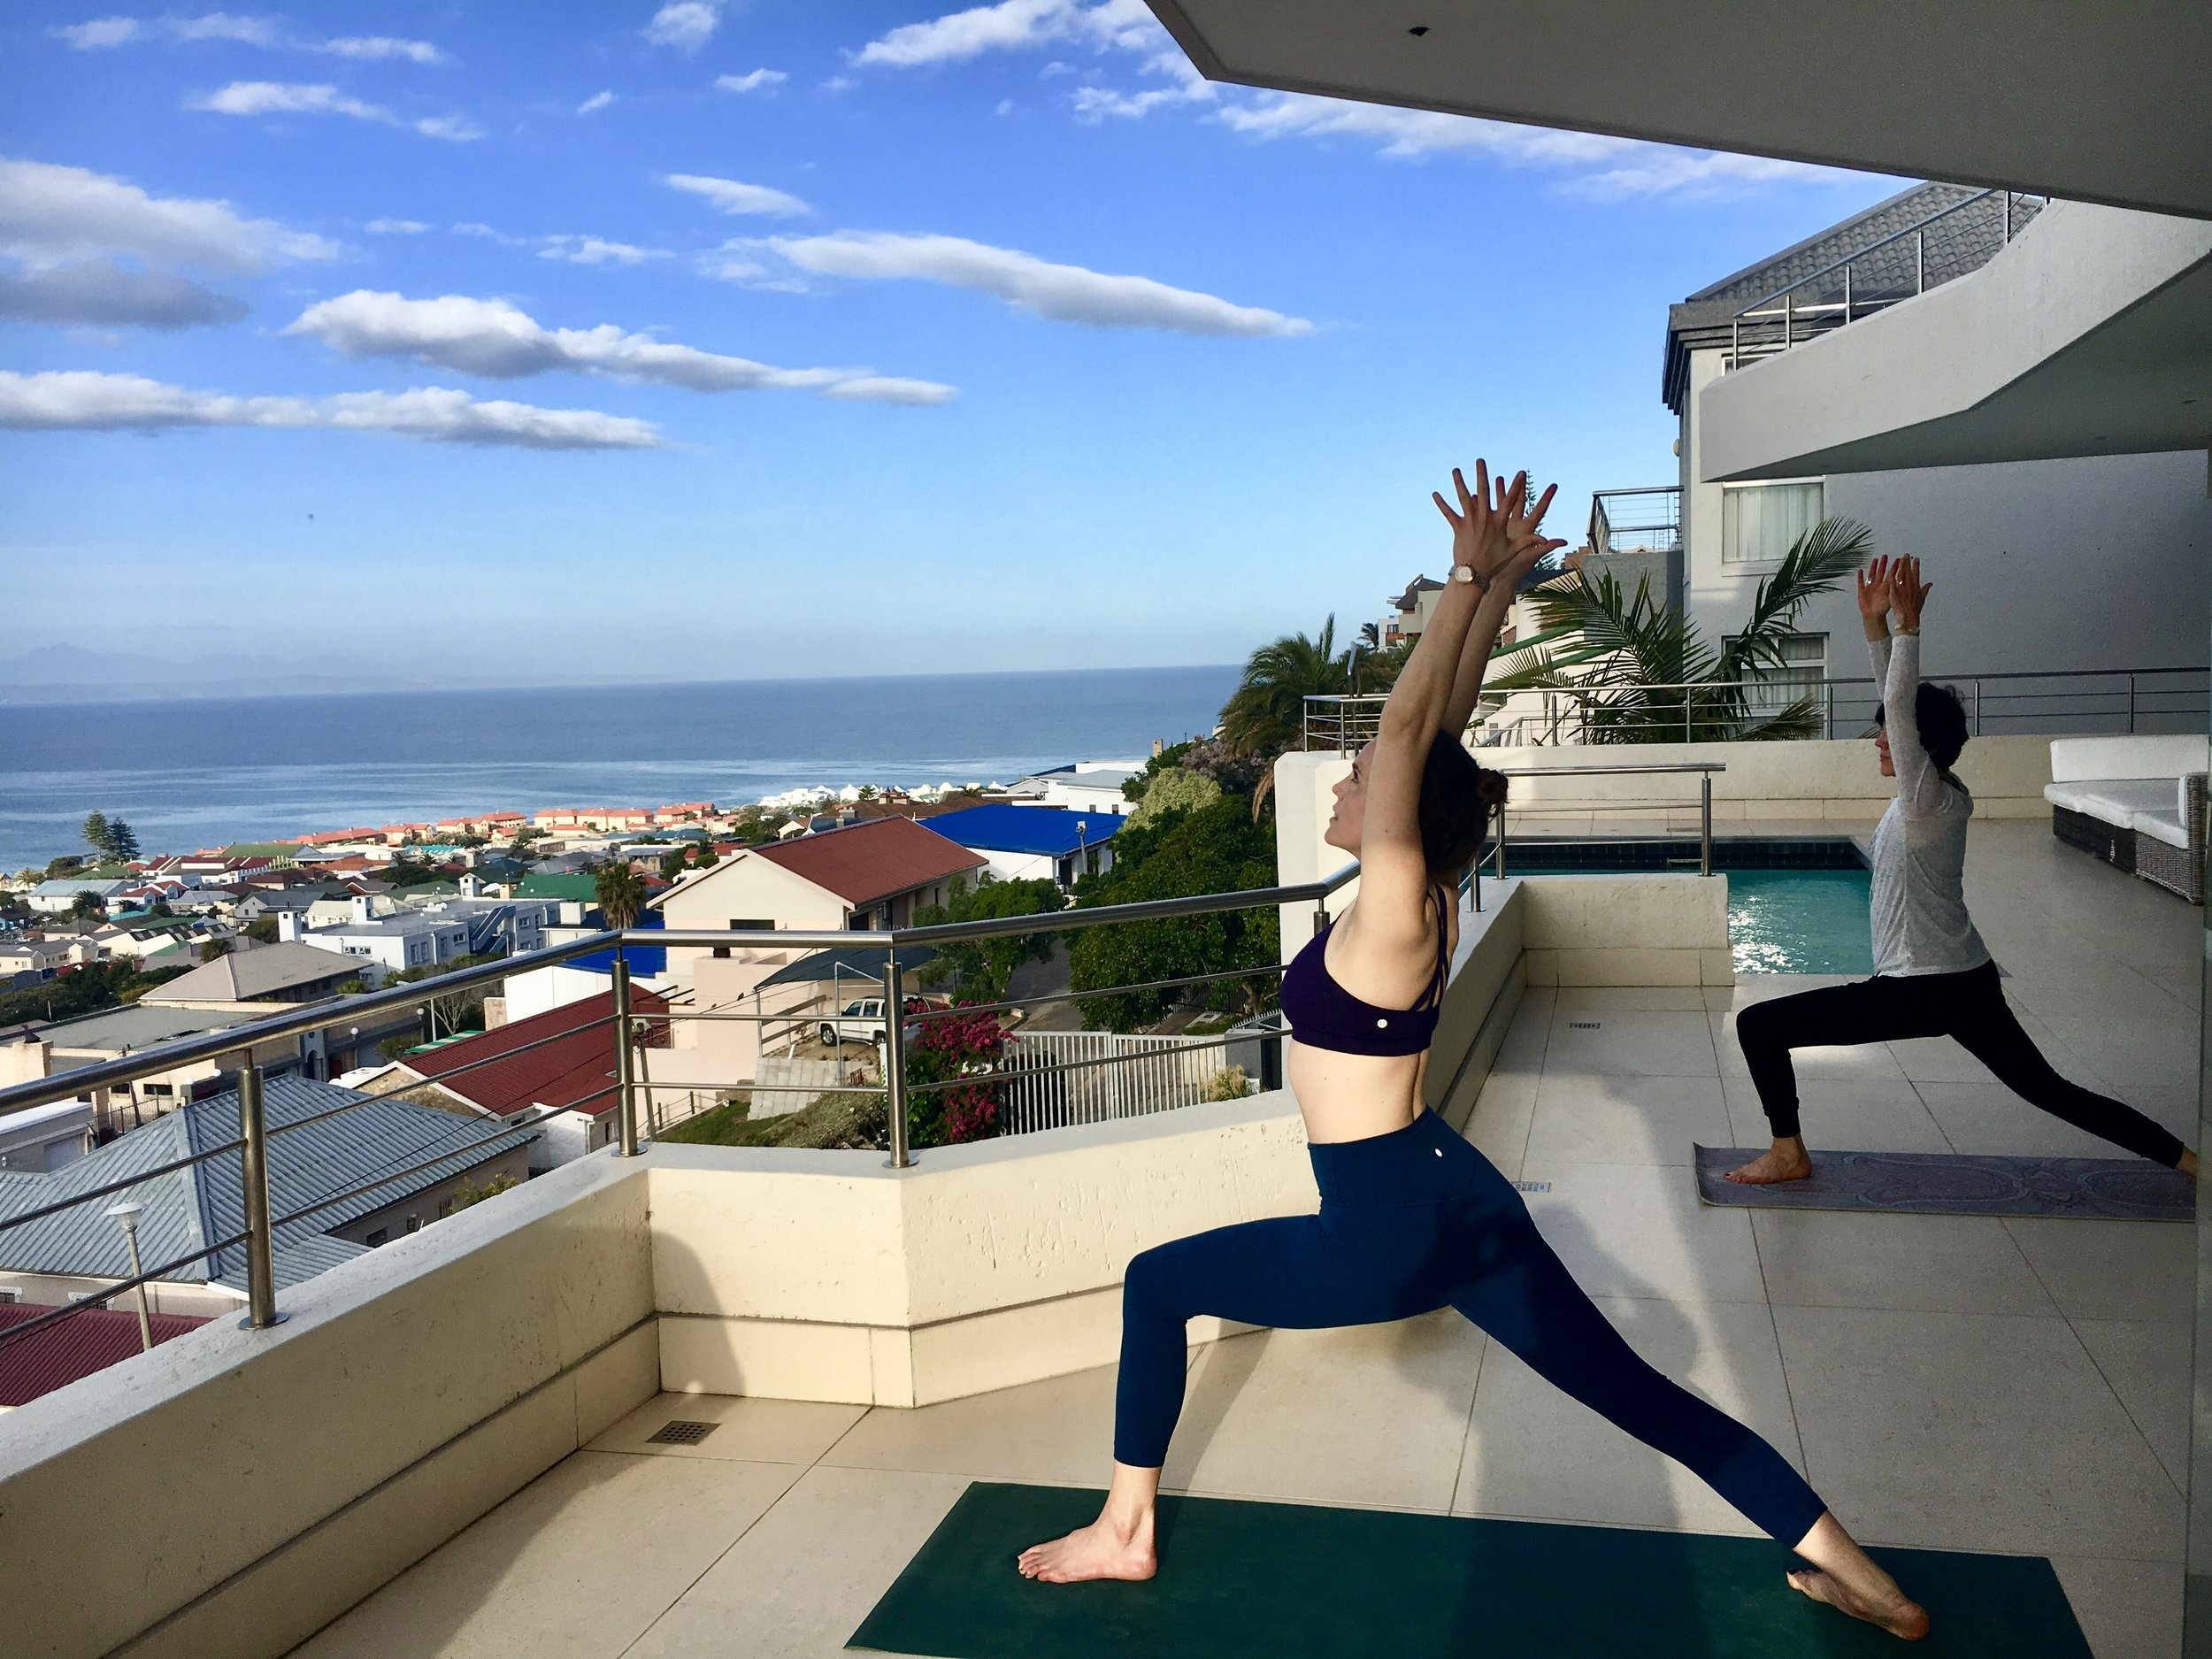 Where it all started for Nina - yoga with her mother, Diana, in South Africa.